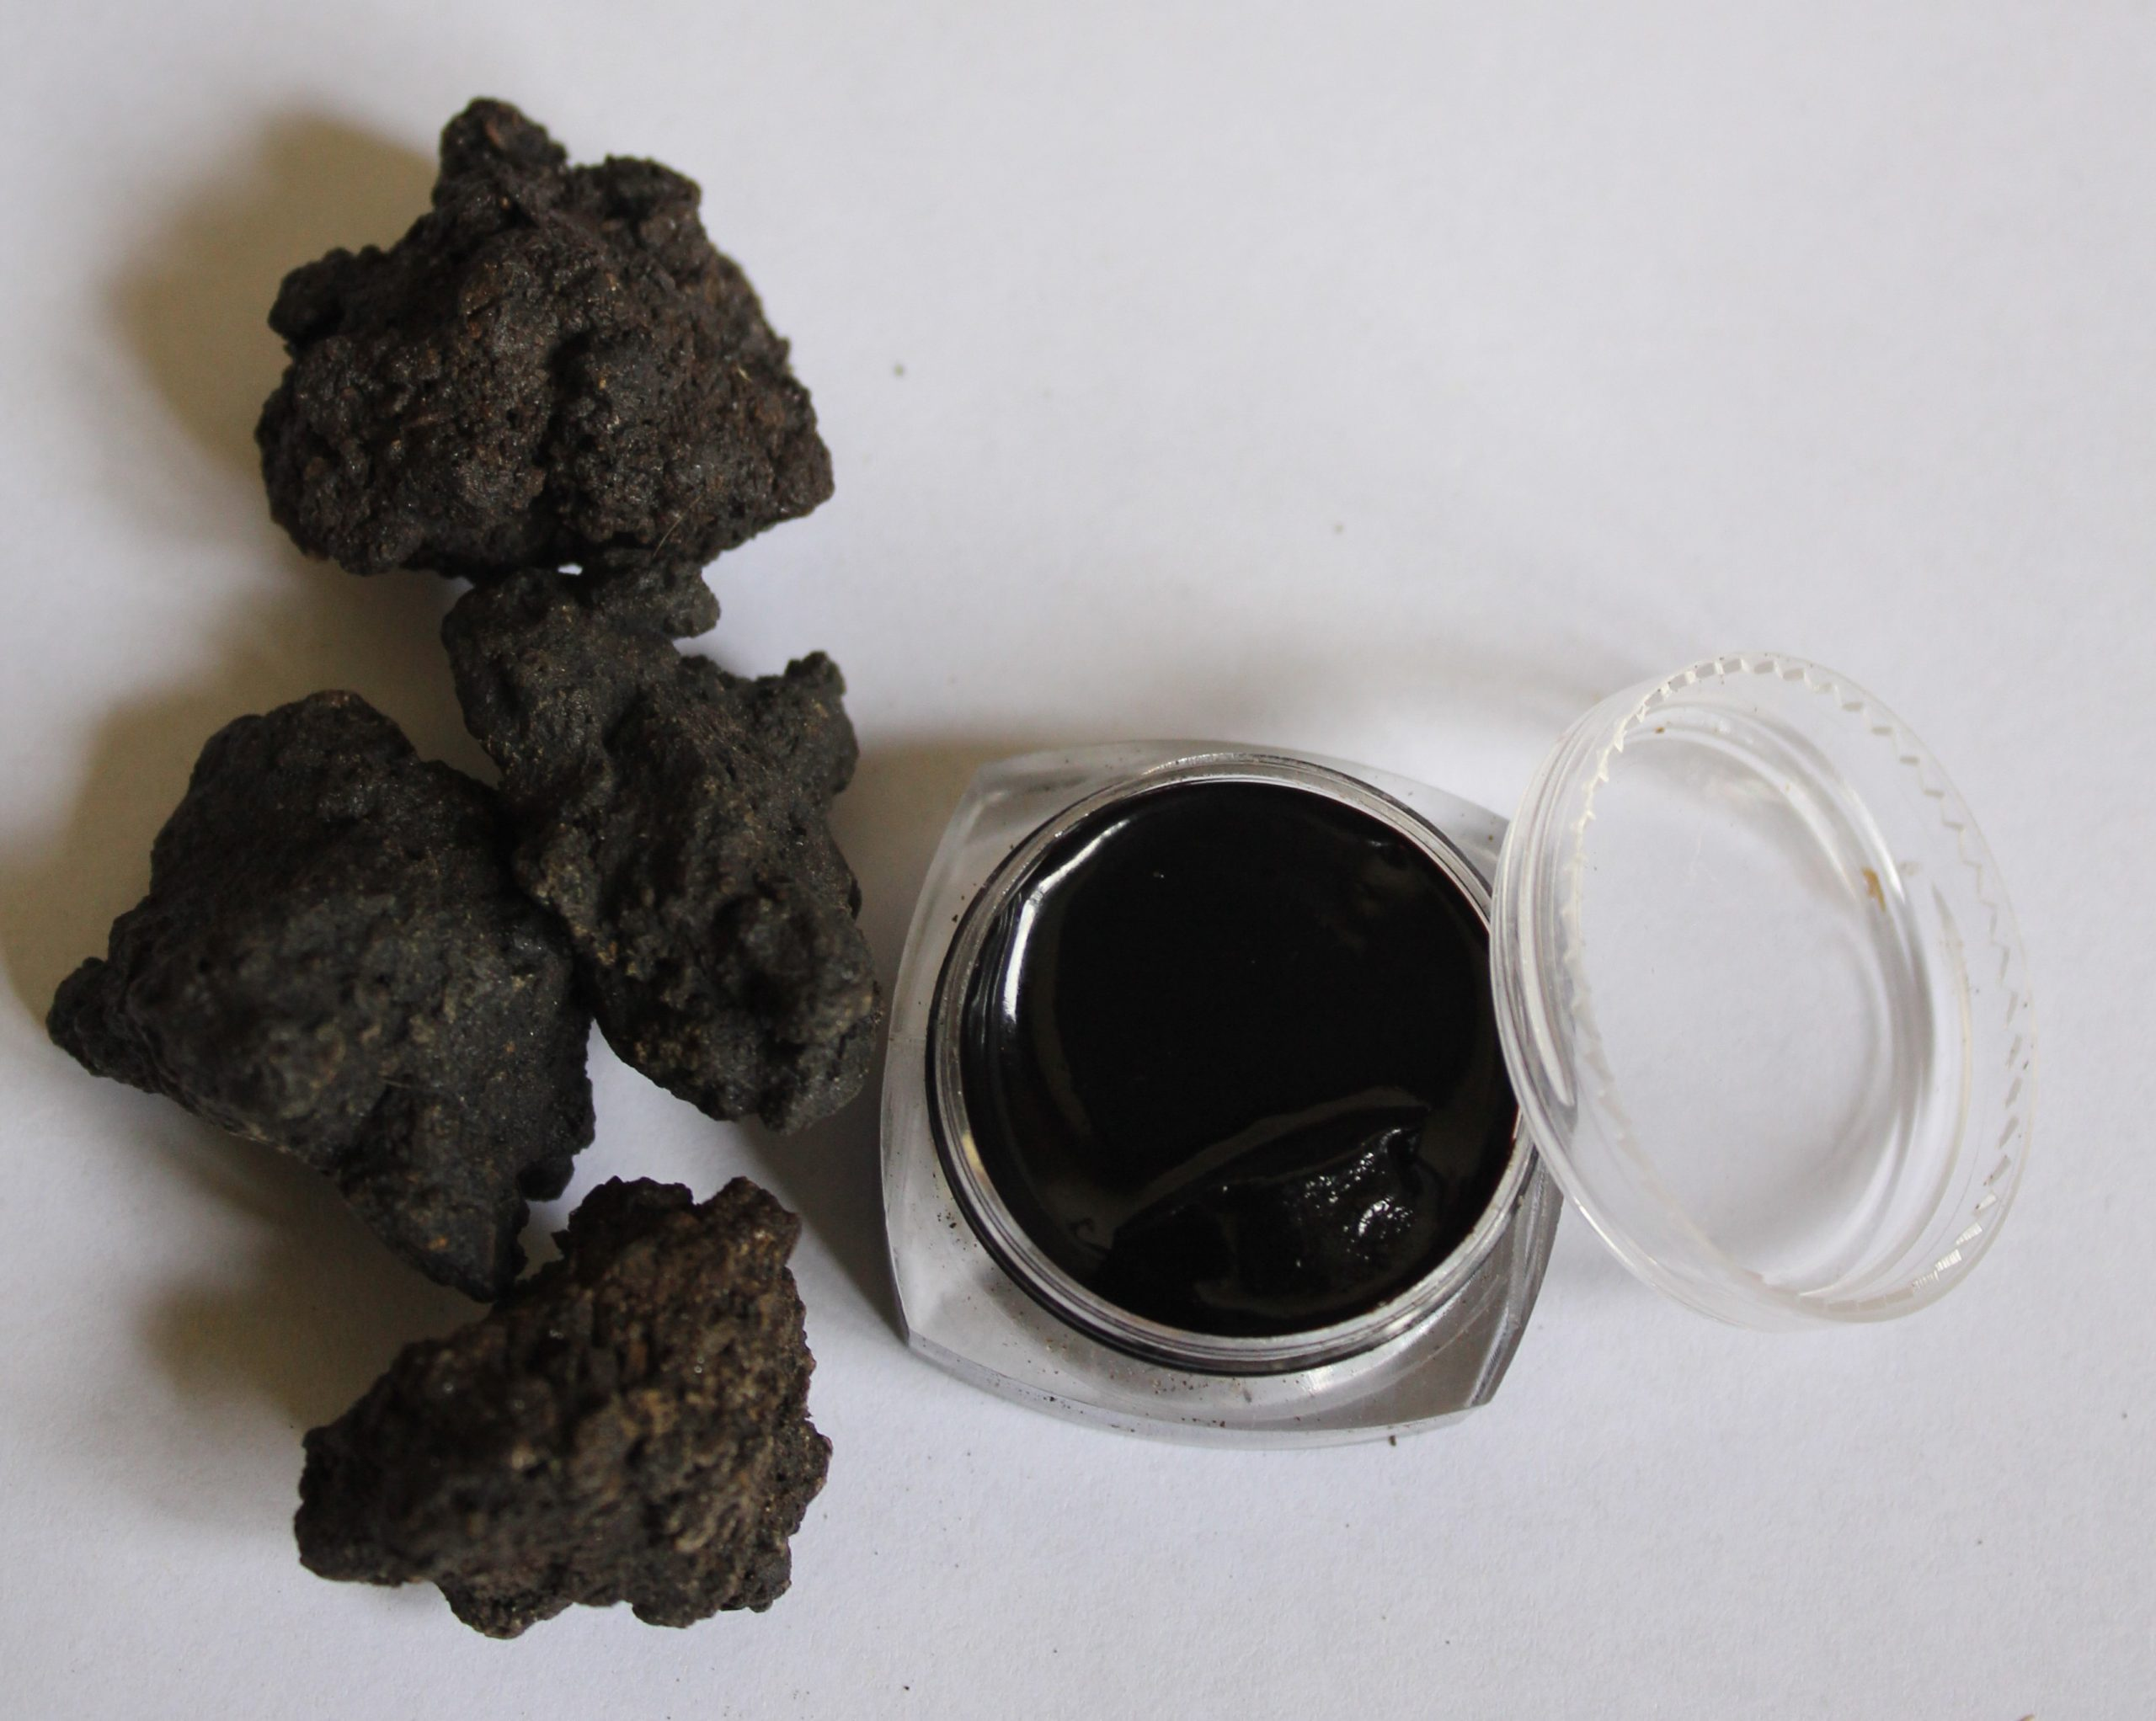 Benefits of Shilajit